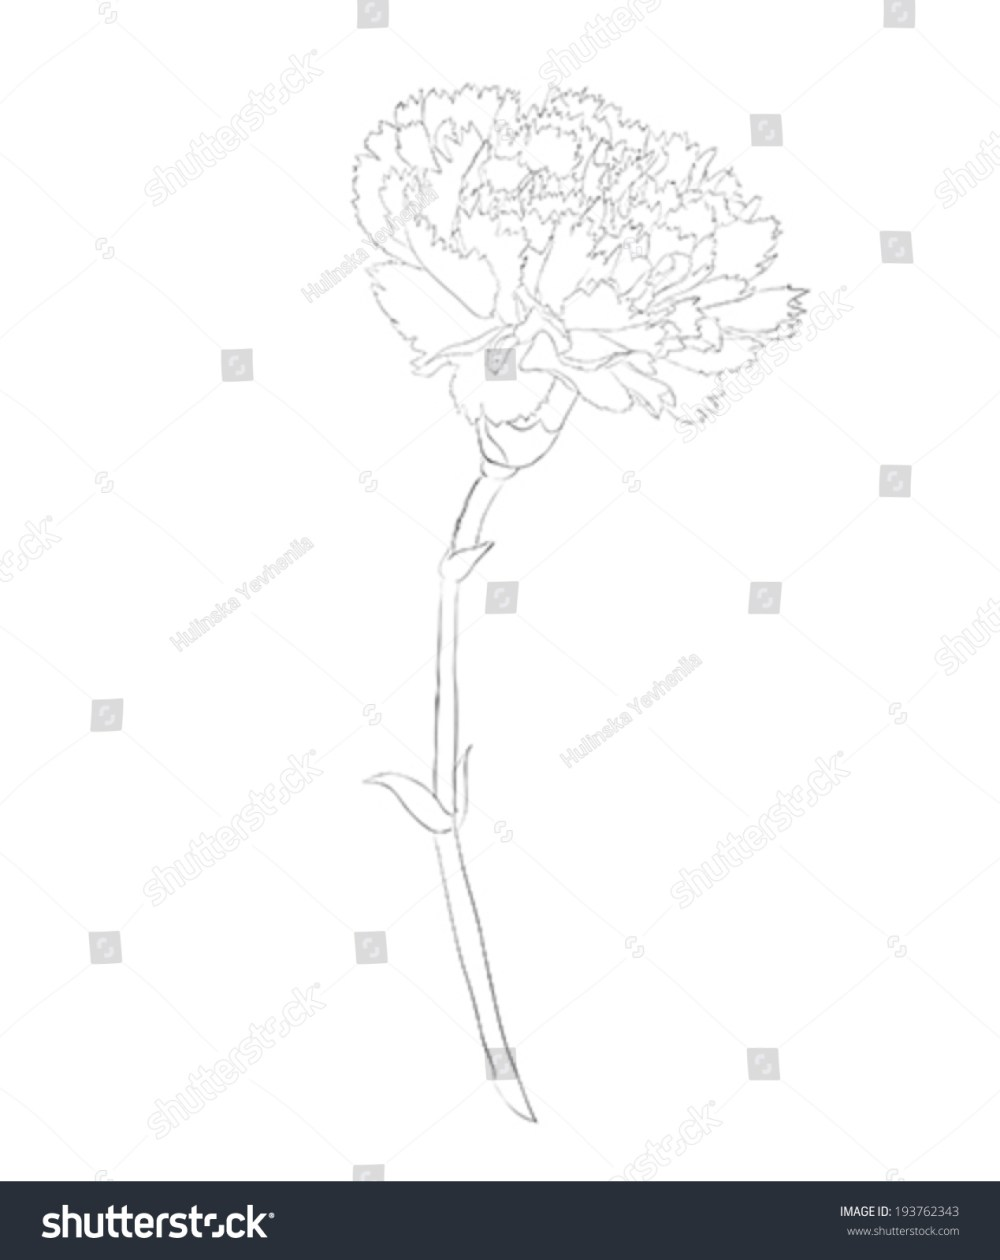 medium resolution of beautiful monochrome black and white carnation flower isolated on white background hand drawn contour